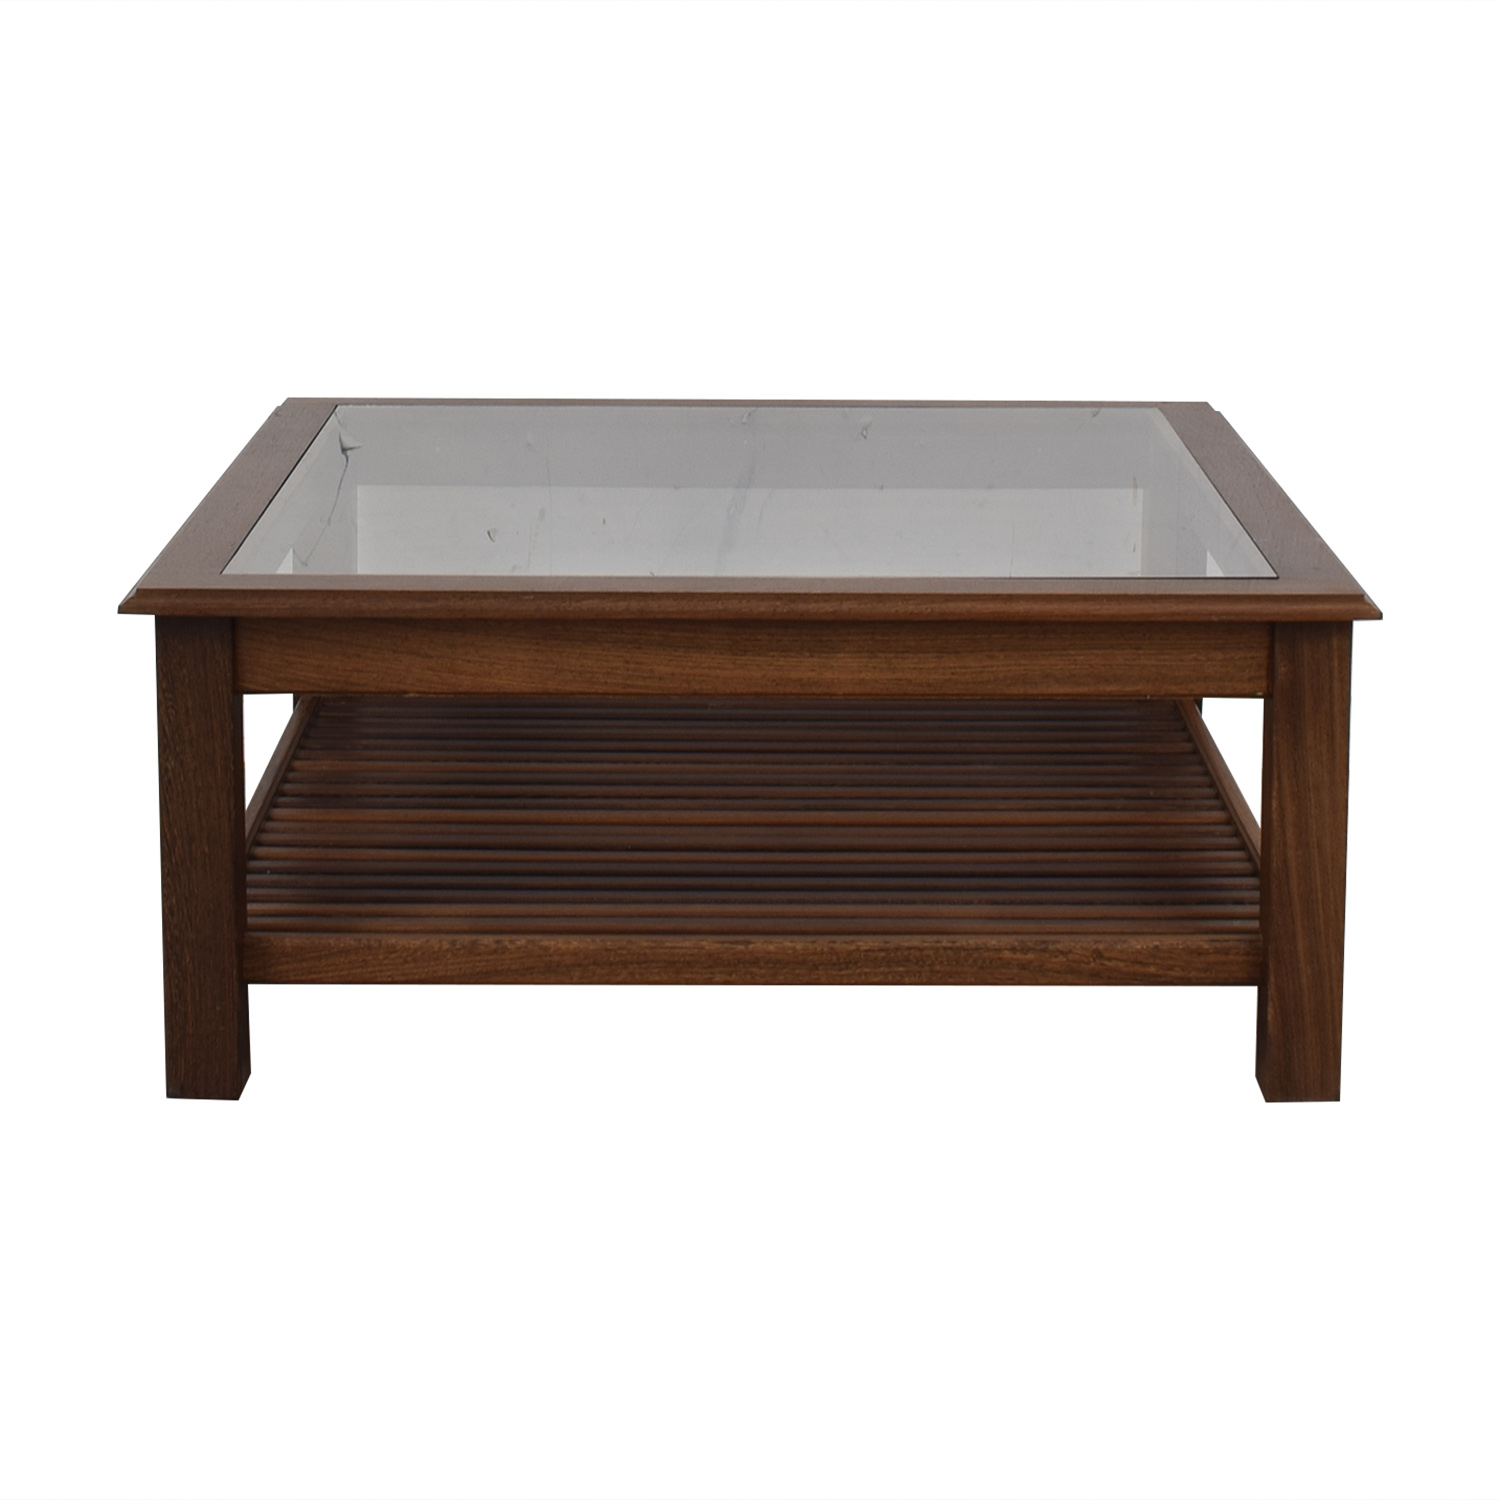 Dalmann Dalmann Craftsman Coffee Table discount